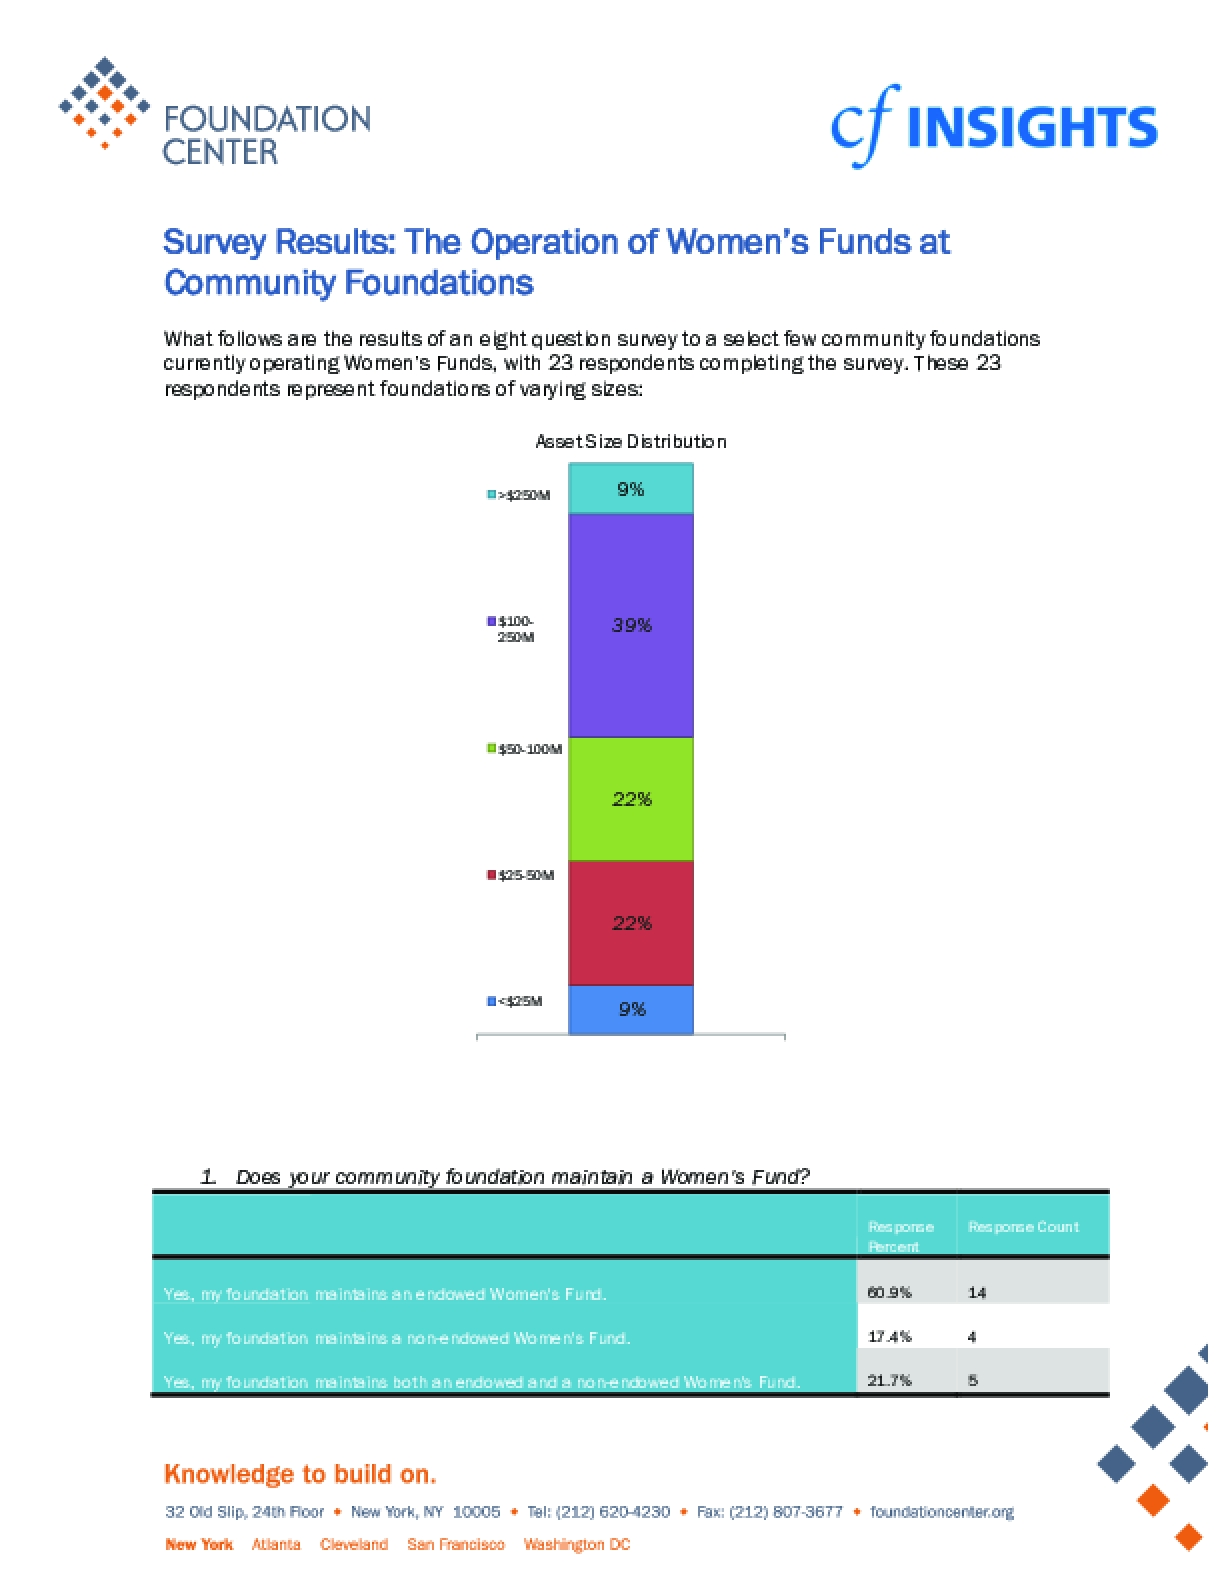 Survey Results: The Operation of Women's Funds at Community Foundations